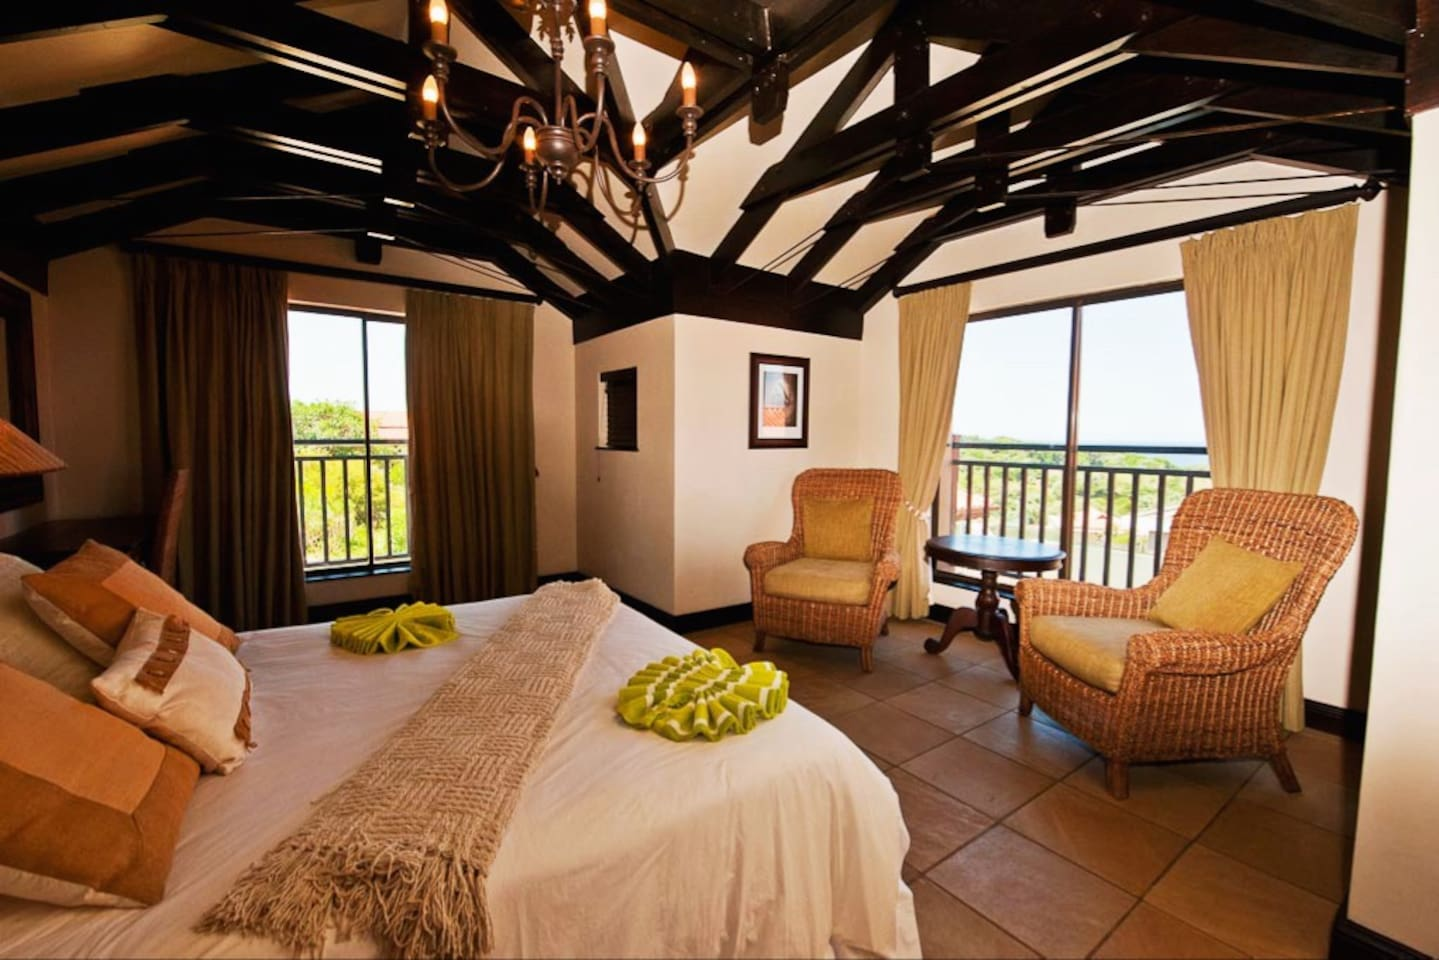 View from the attic bedroom - all 6 en-suite bedrooms have glorious views of the Indian Ocean (except for the children's bunk bedroom). Four have views of the sea and the world renown Zimbali golf course signature green.